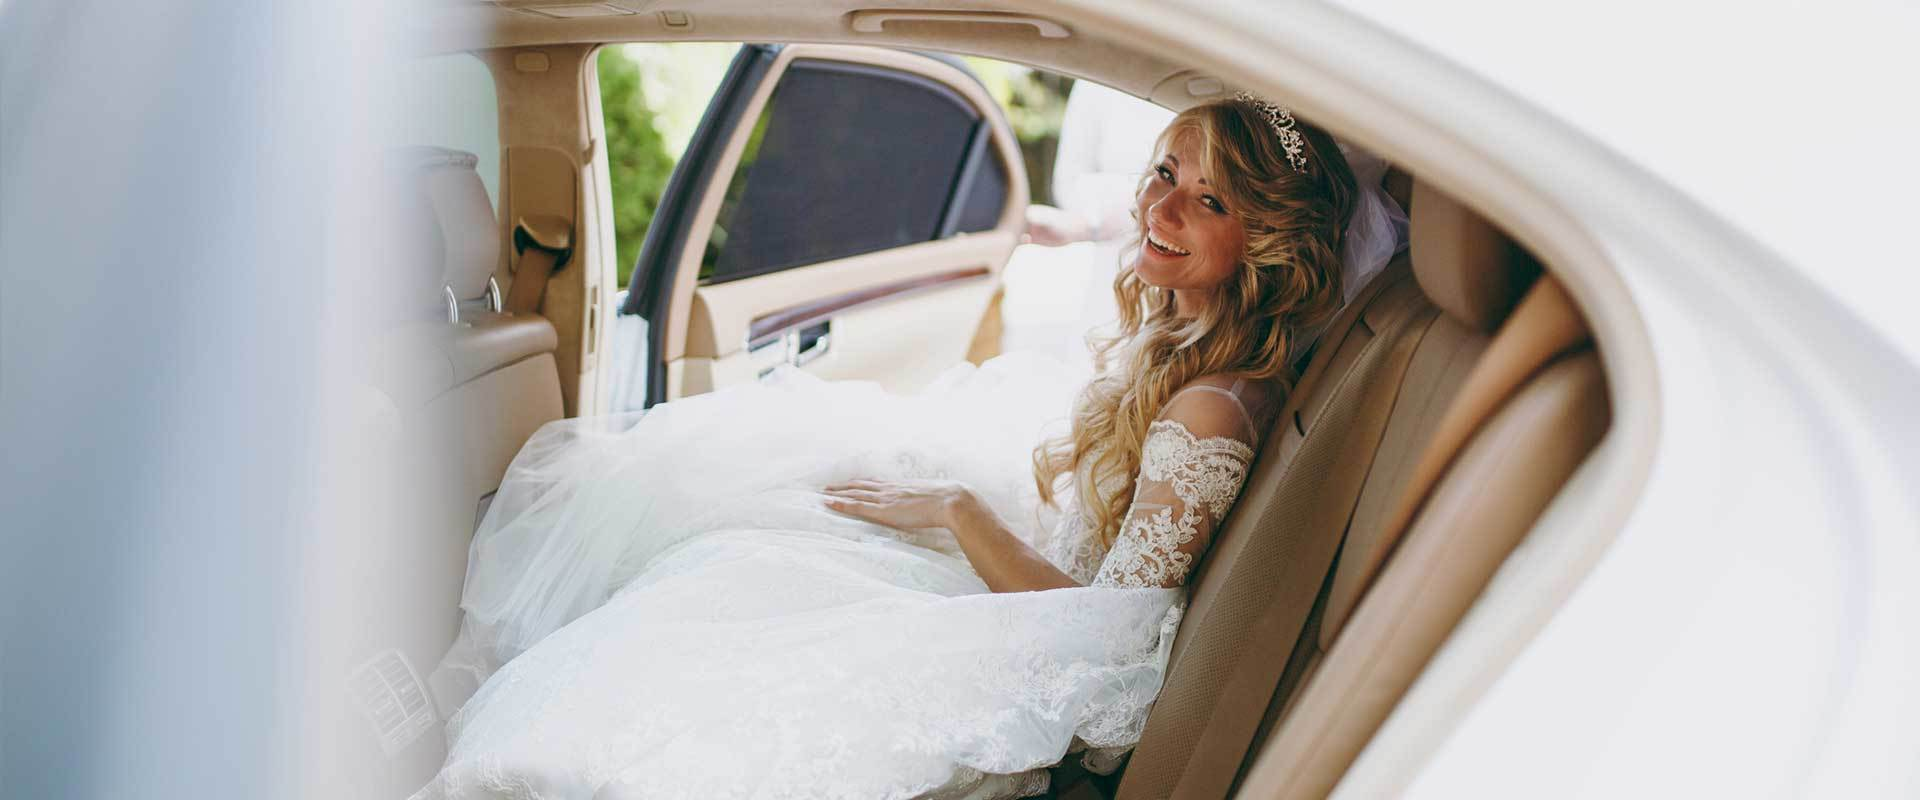 Wedding Limos London, Hummer Limos London, Party Limousines London